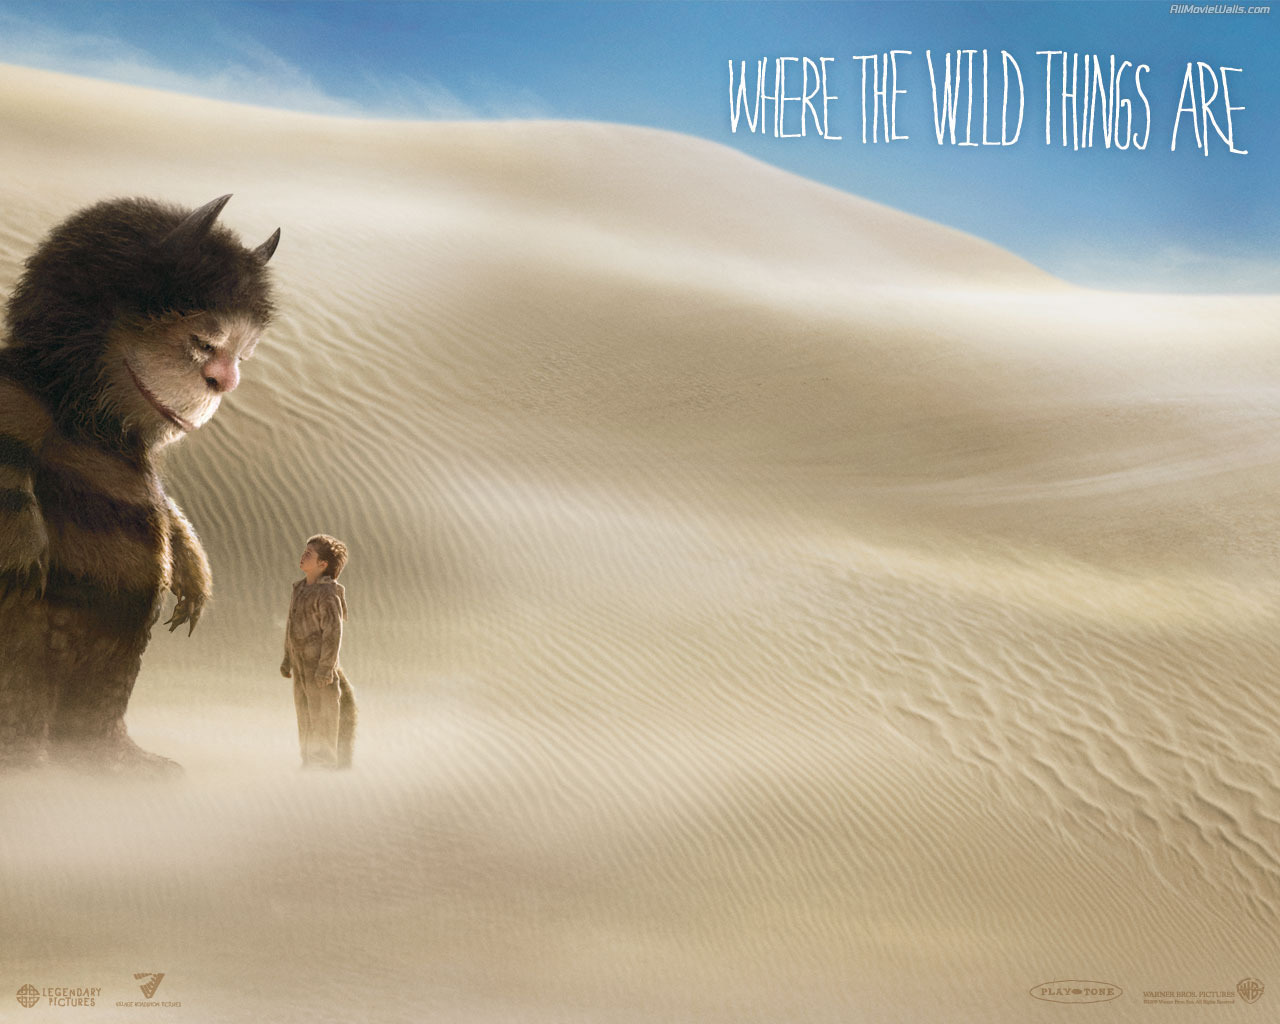 where the wild things are movies wallpaper 9133033